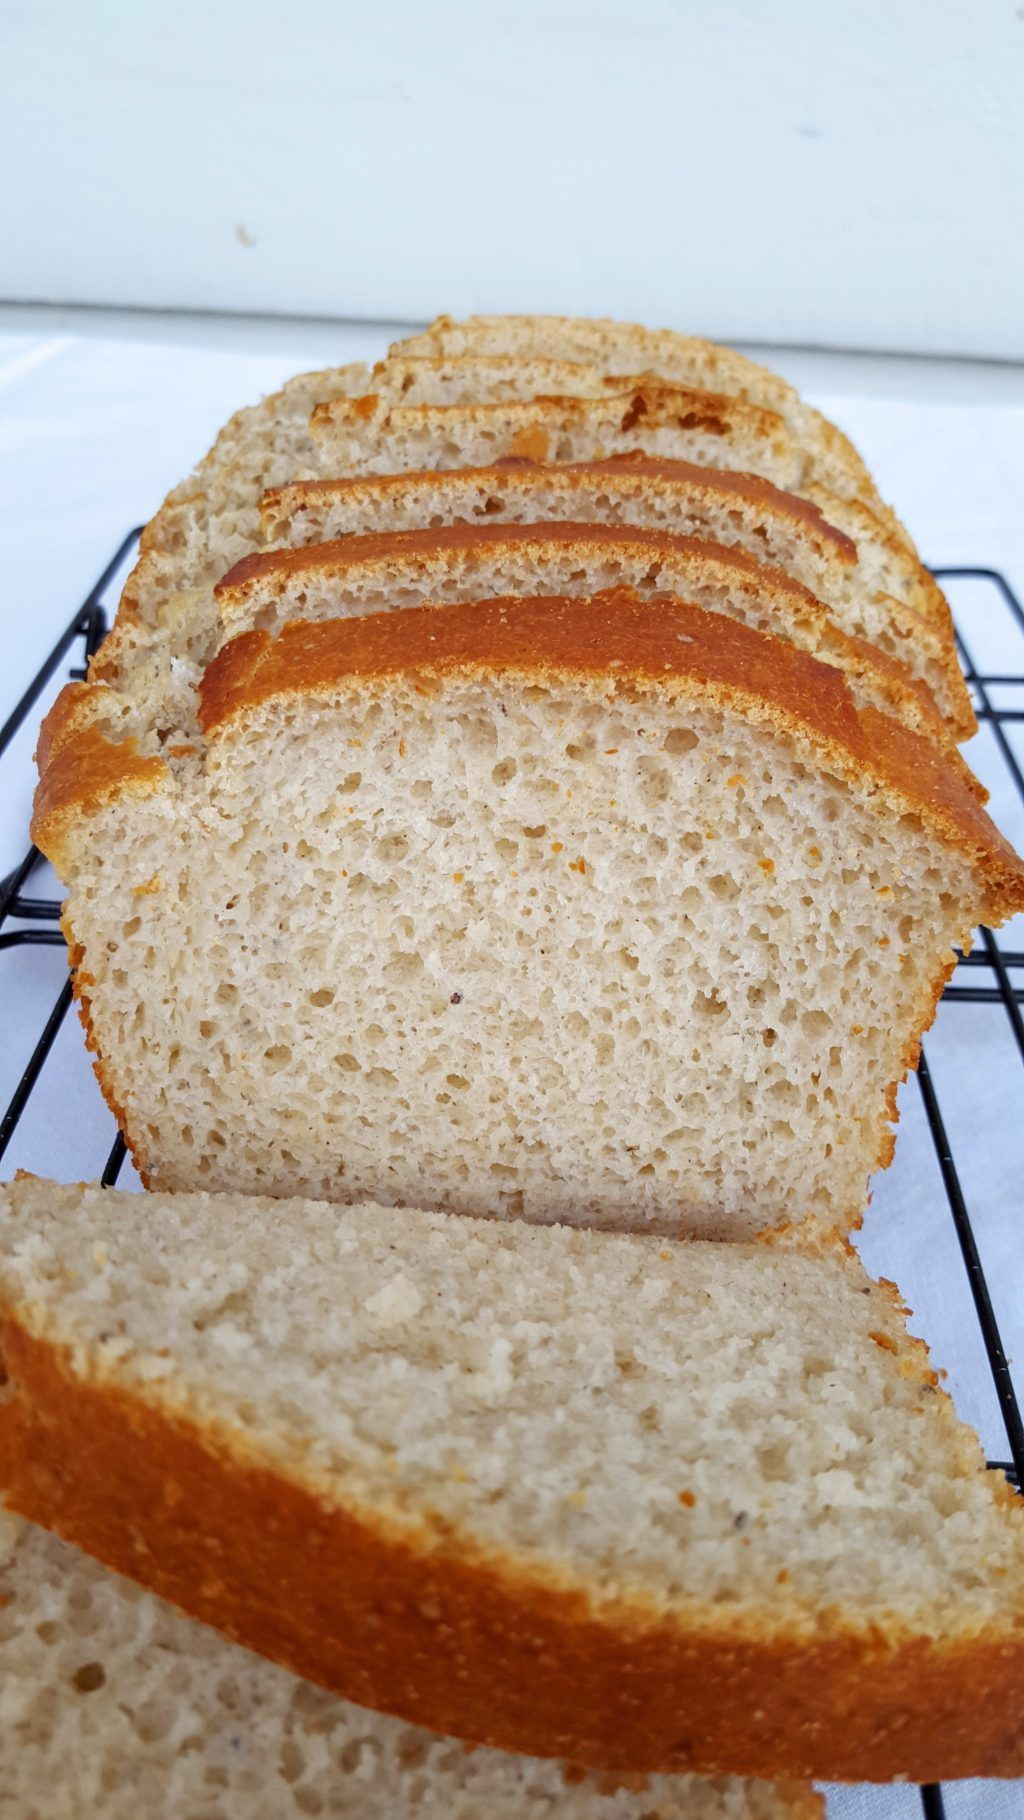 Amazing Gluten Free White Bread Without Xanthan Gum Plus 7 Tips For Making It Recipe Best Gluten Free Bread Gluten Free Recipes Bread Gluten Free Yeast Free